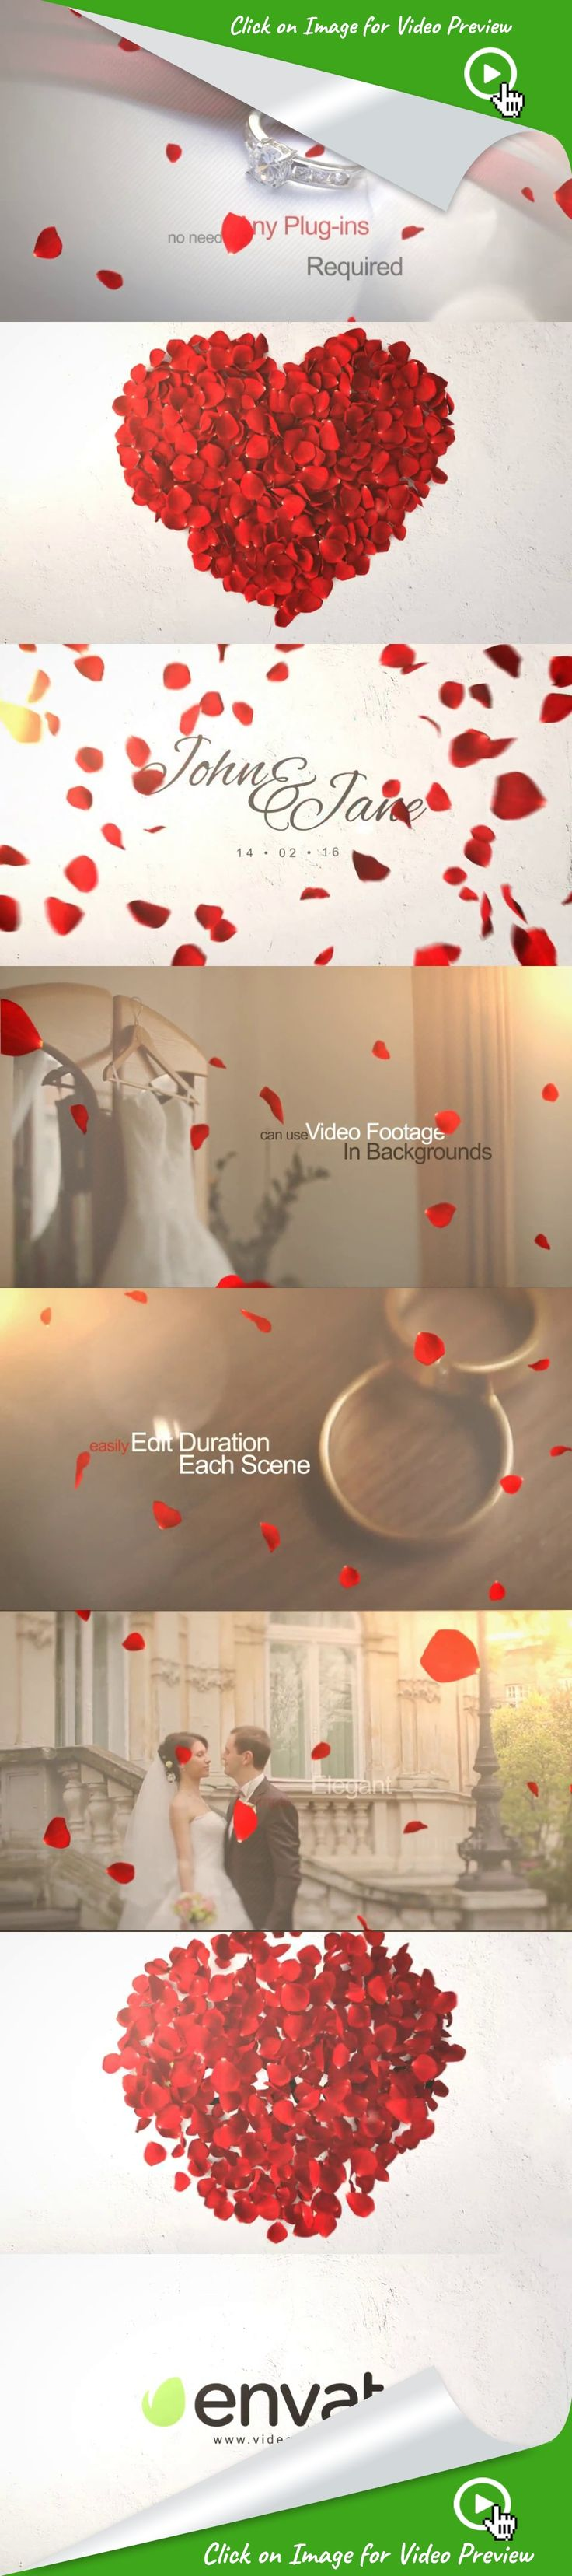 falling rose, family, flowers, heart, intro, light, love, petals, romantic, rose, rose logo reveal, simple, valentine, wedding, wedding intro, after effects templates, after effects ideas, after effects motion graphics, after effects projects, videohive projects Wedding Opener   After Effects CS4, CS5, CS5.5, CS6, CC  No plug-in required  Video tutorial included  Easy for use  Can edit duration of each scene  Can duplicate remove or rearrange scene   Music used in preview :> HERE   Photo...